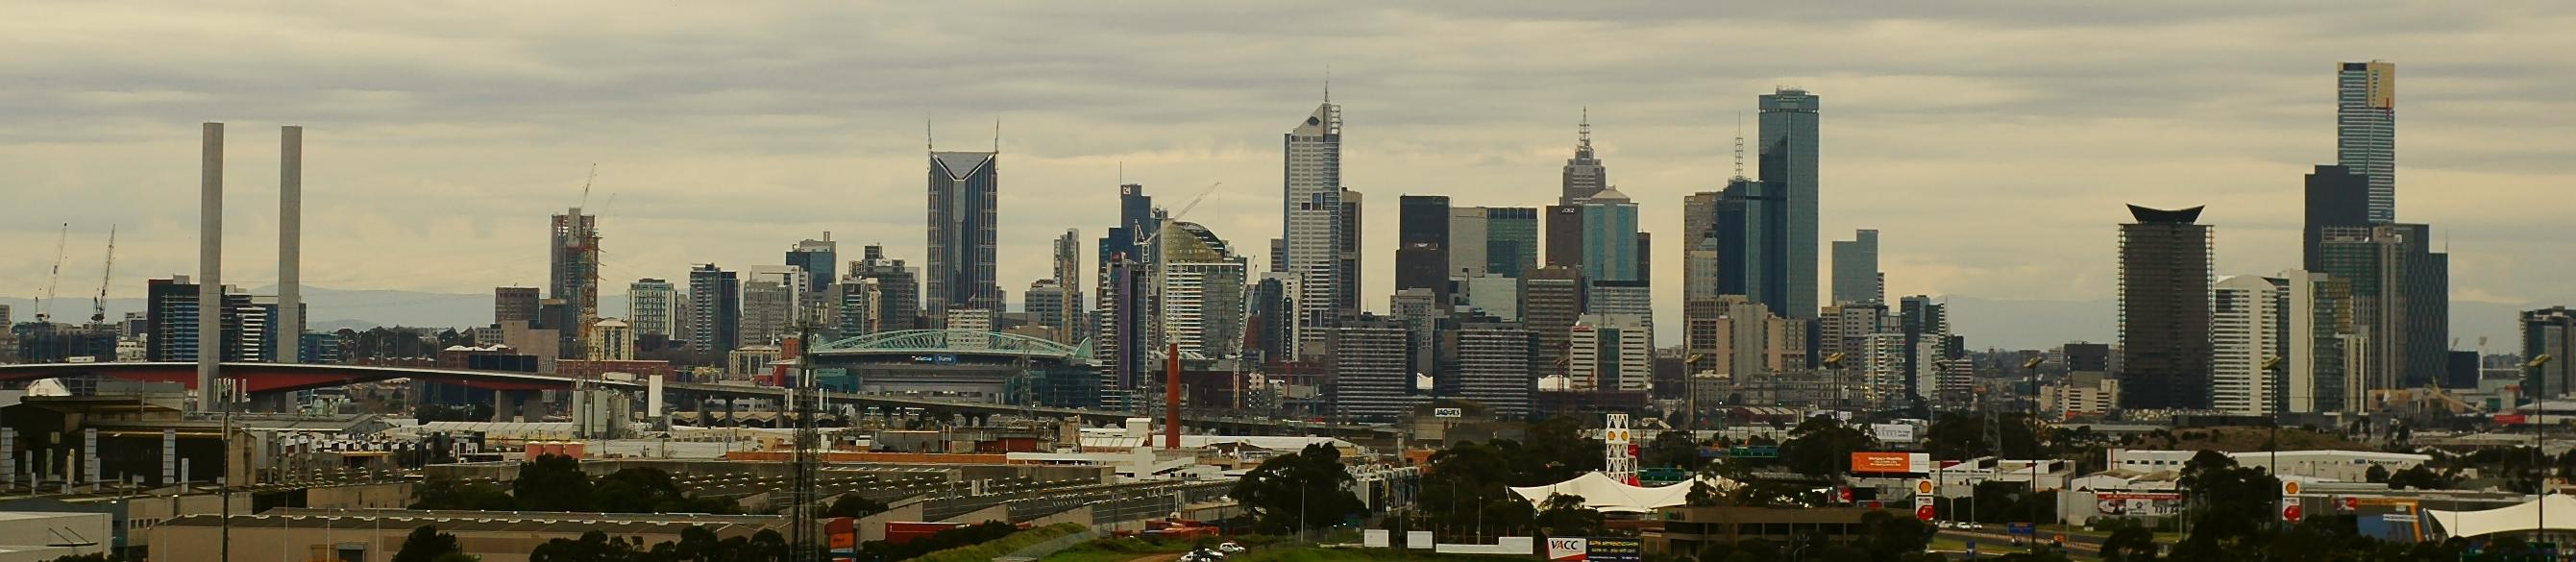 Melbourne Skyline - YouTube